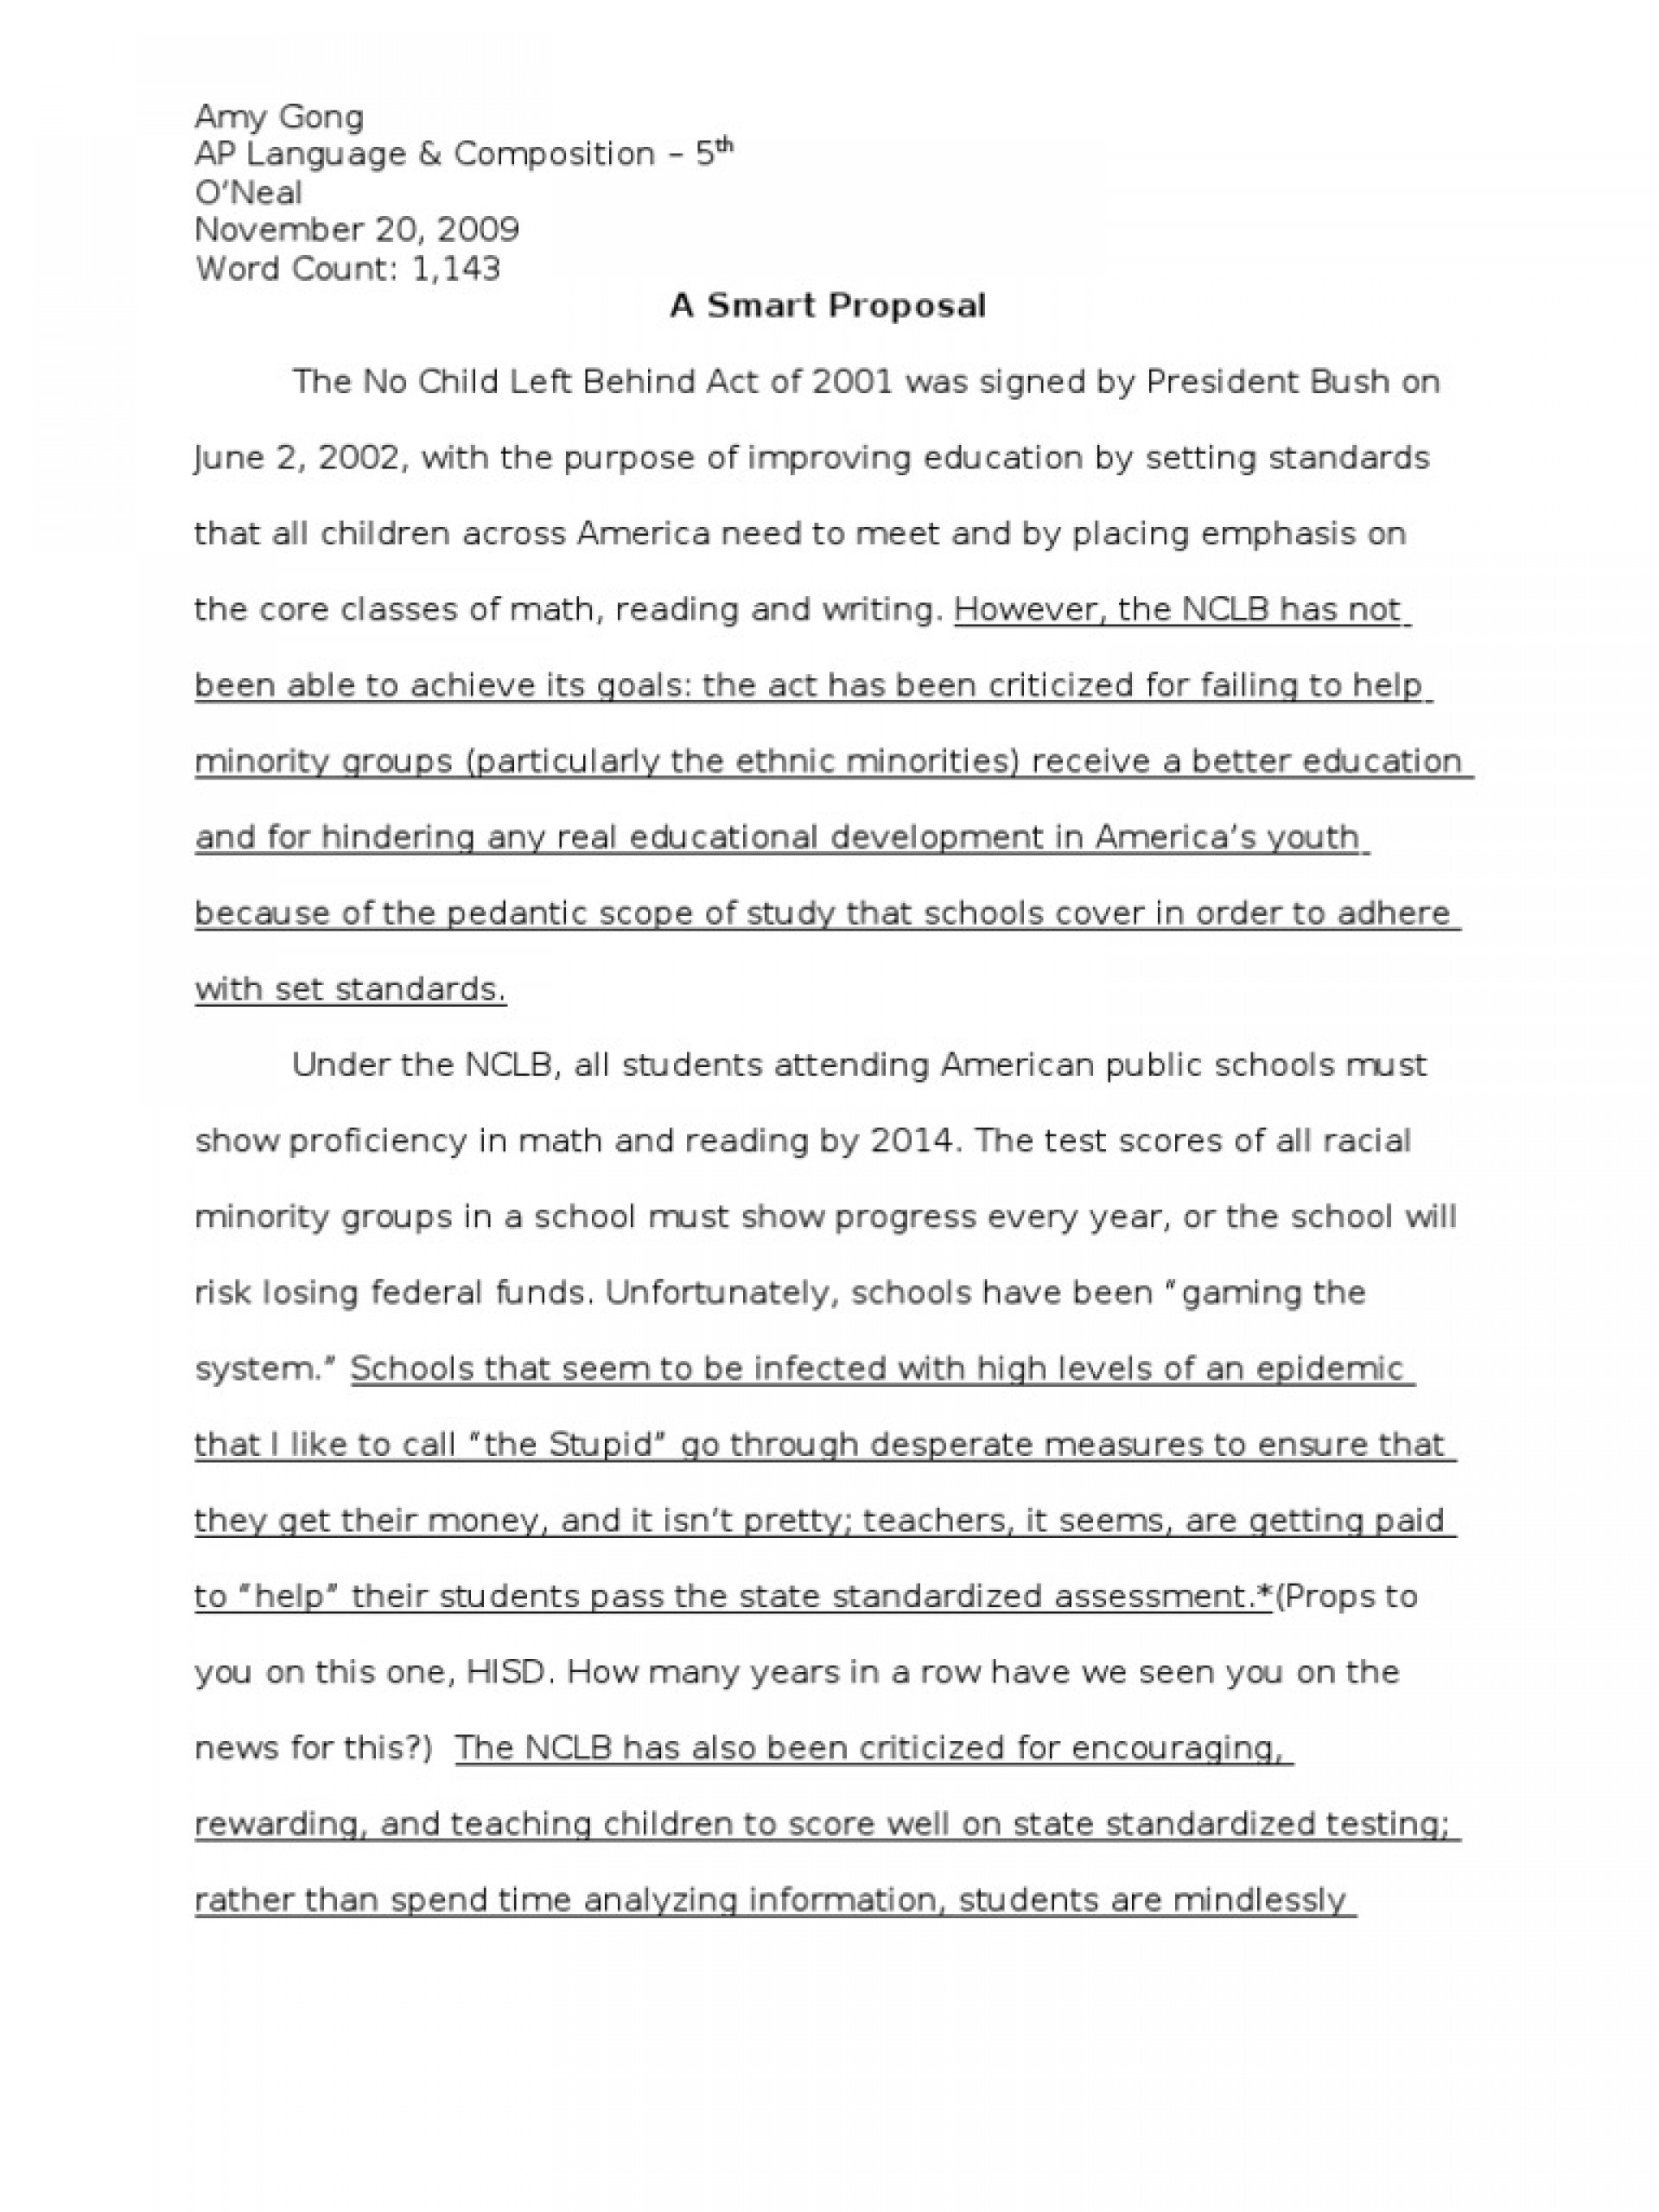 009 Essay Example Satire Satirical Of Samples Essays Good Examples Topics Global Beautiful On Gun Control Questions Ideas 1920